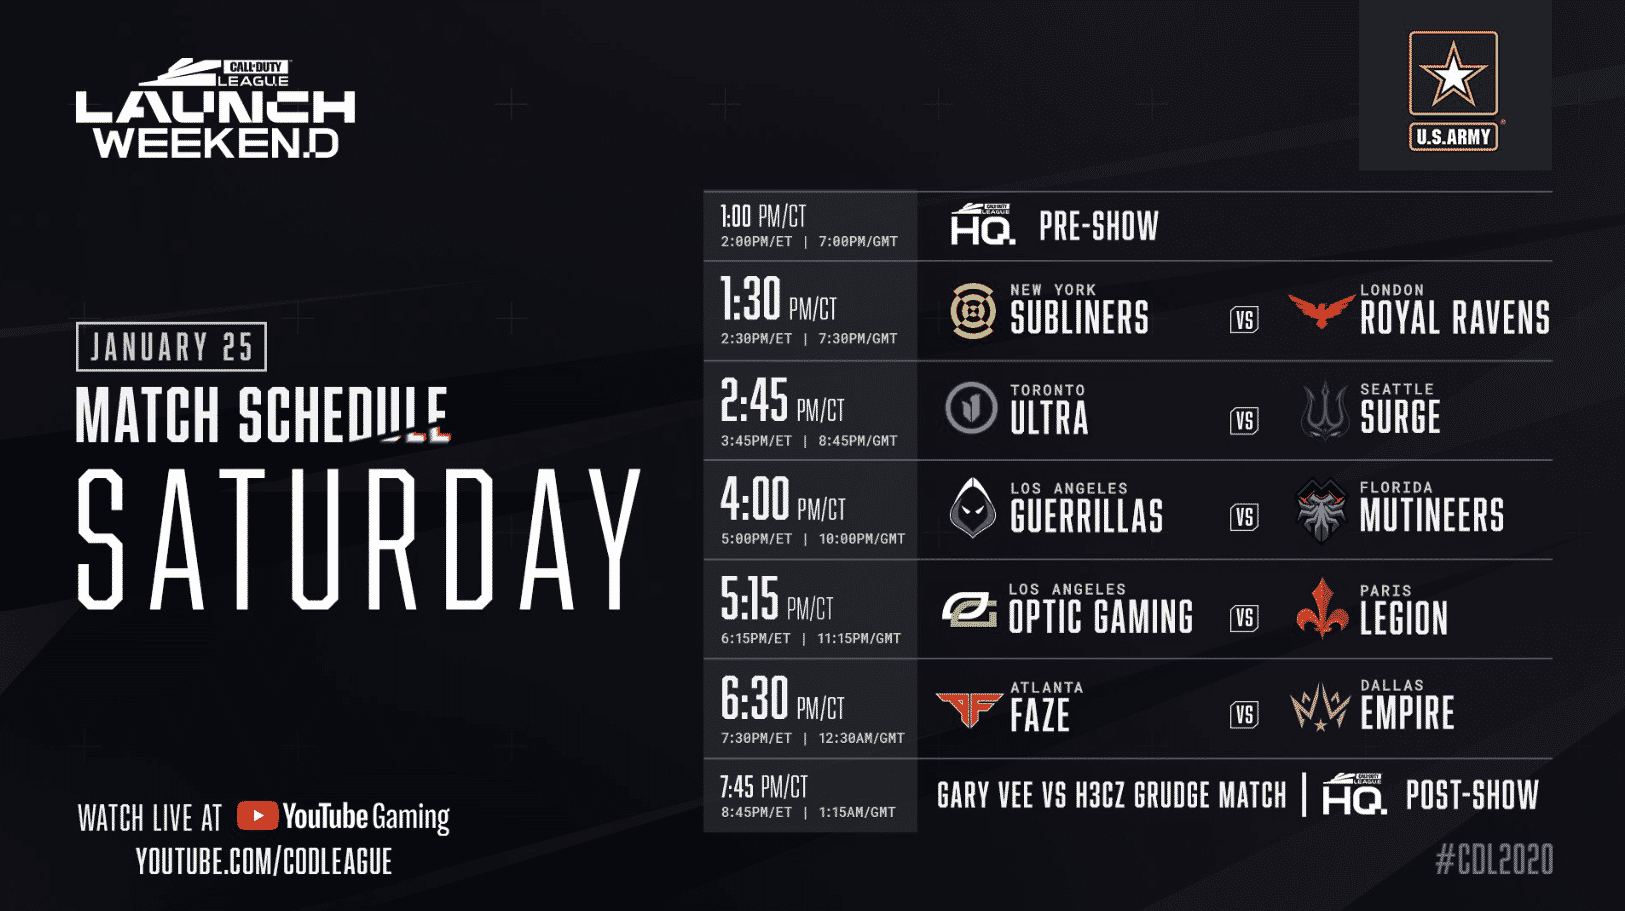 Call of Duty League Match Schedule Saturday Launch Weekend